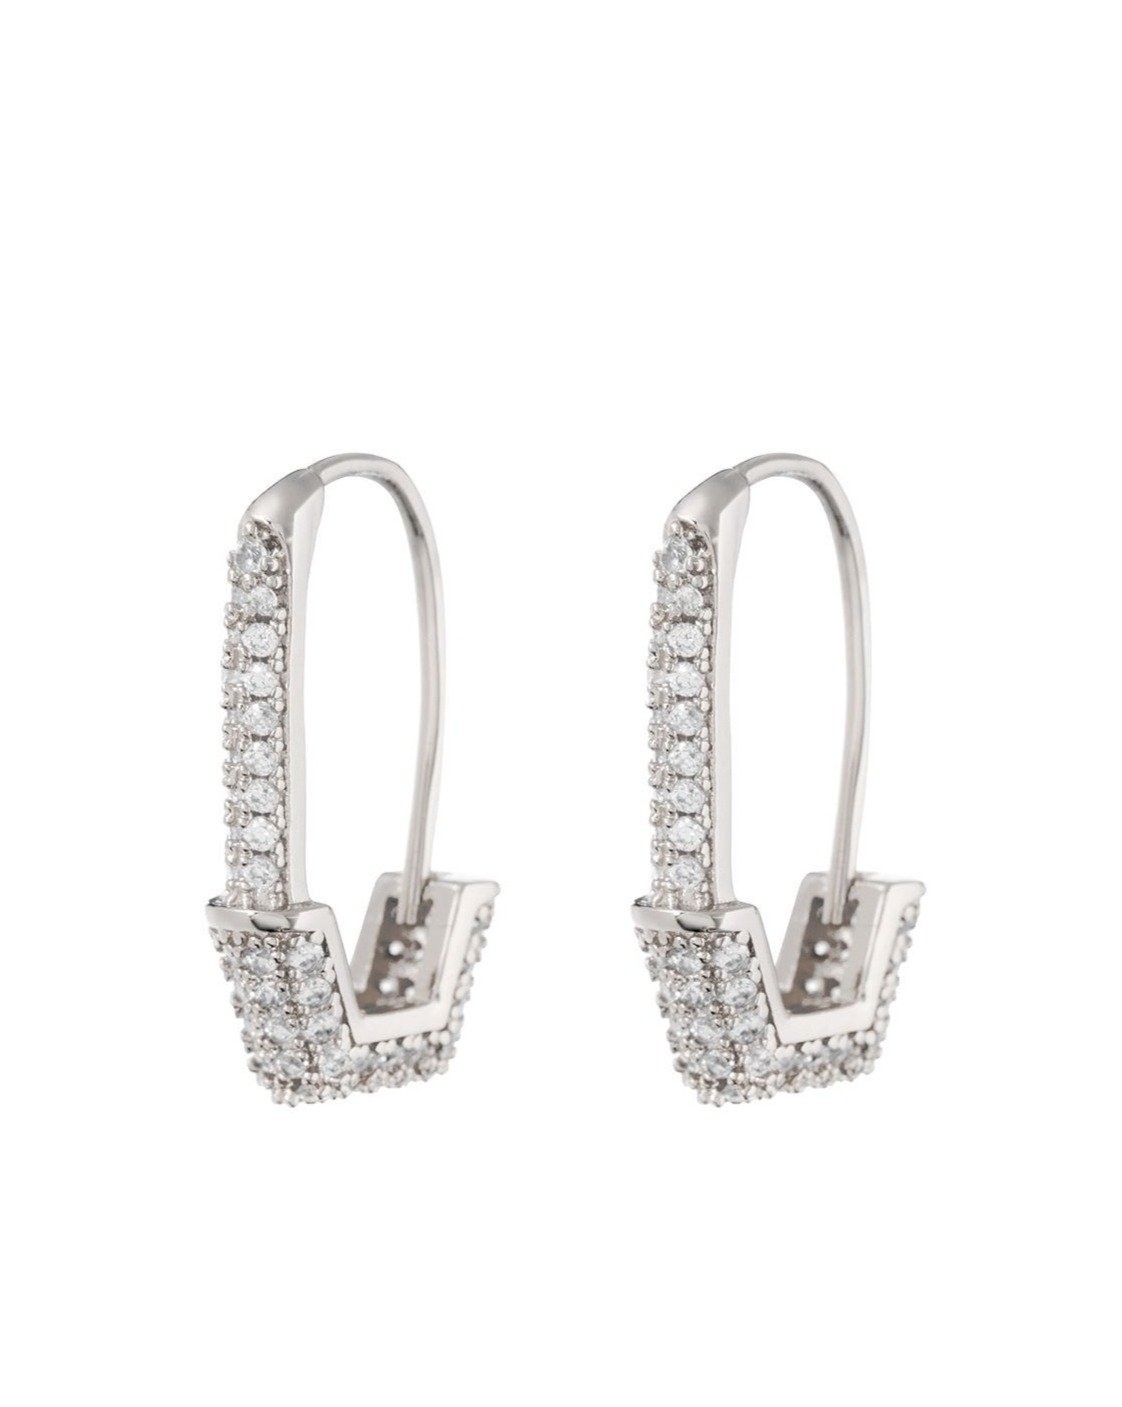 Pave Hex Safety Pin Earrings -  Silver | Luv AJ - Holiday 2020 | Women's Jewelry